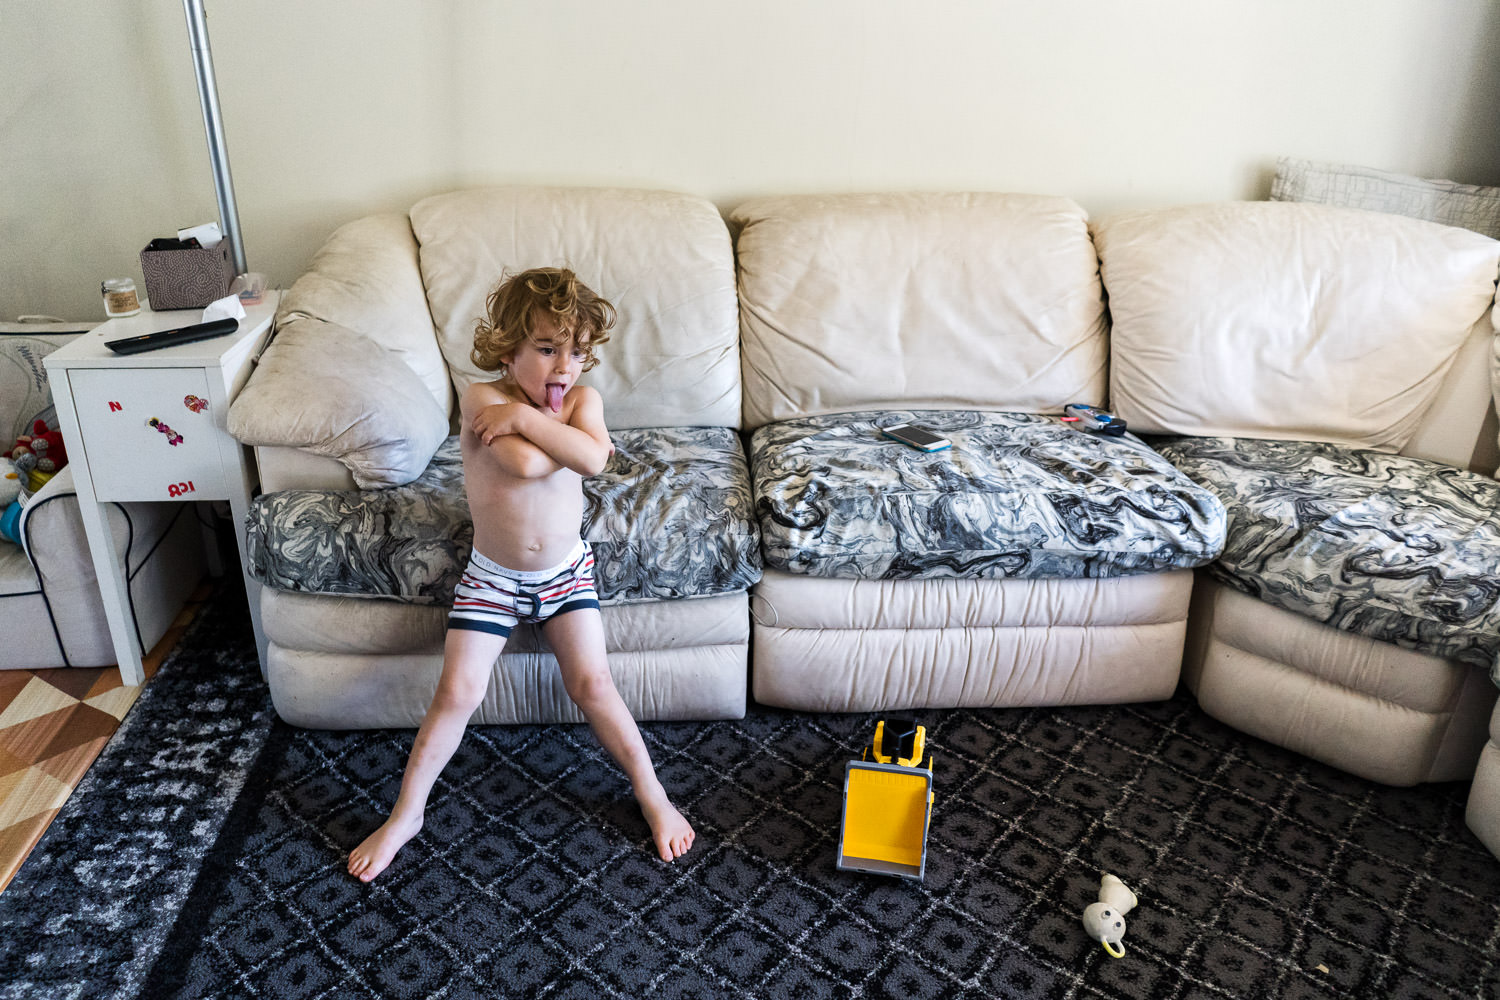 A little boy stands in his living room in his underwear.